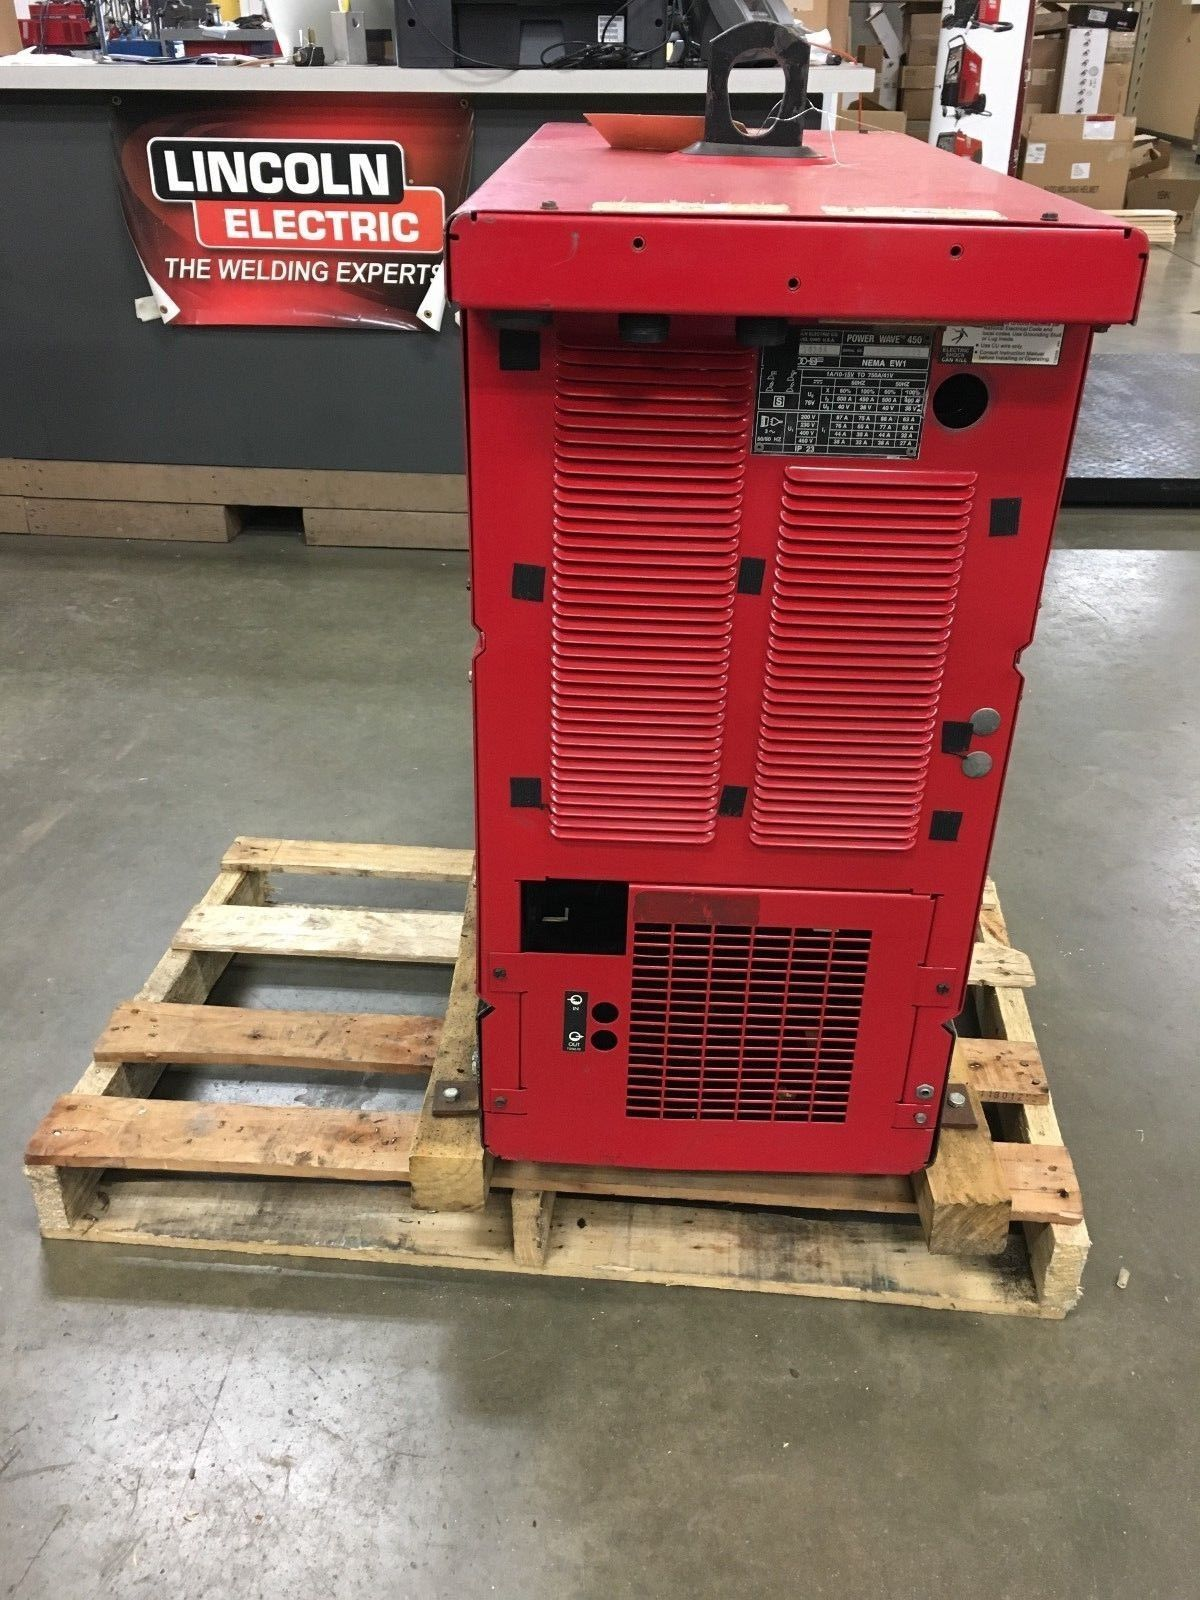 feeder pak speed suitcase electric weld welder lincoln feed wire miller s sp core constant hd mig